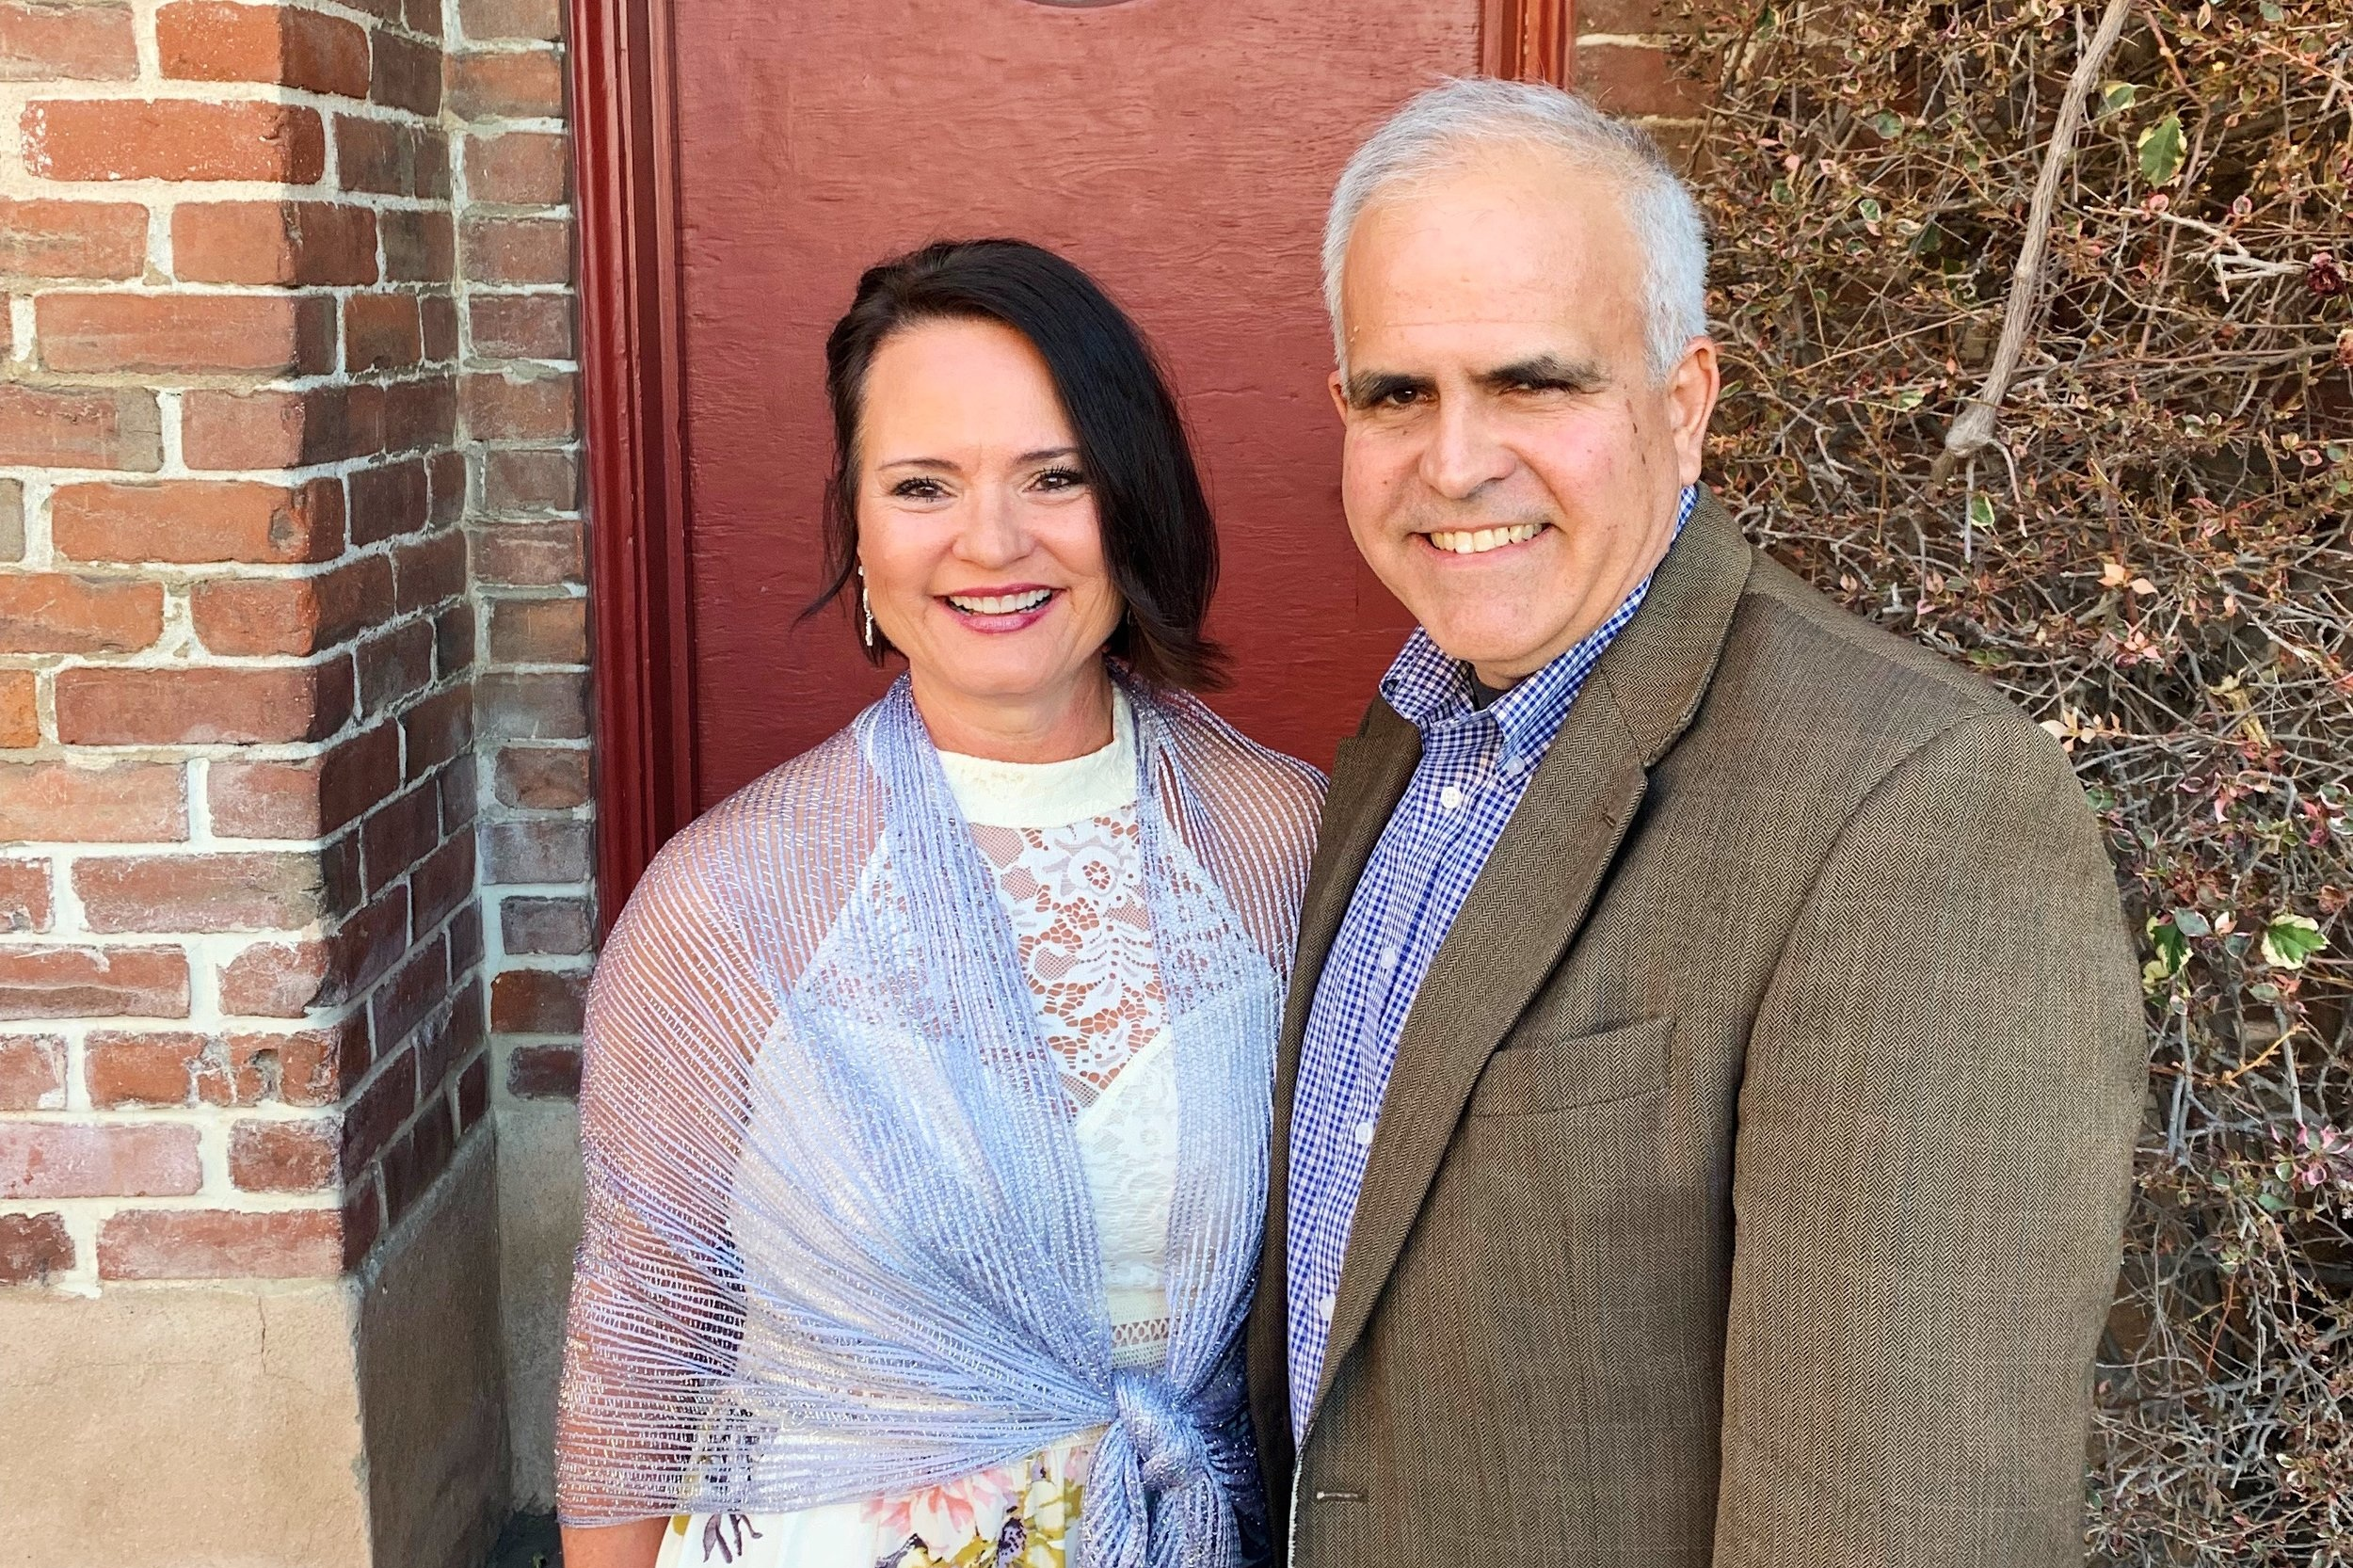 Laura and Mike Gouveia at the 2019 Spring Vision Dinner in Redlands, California.